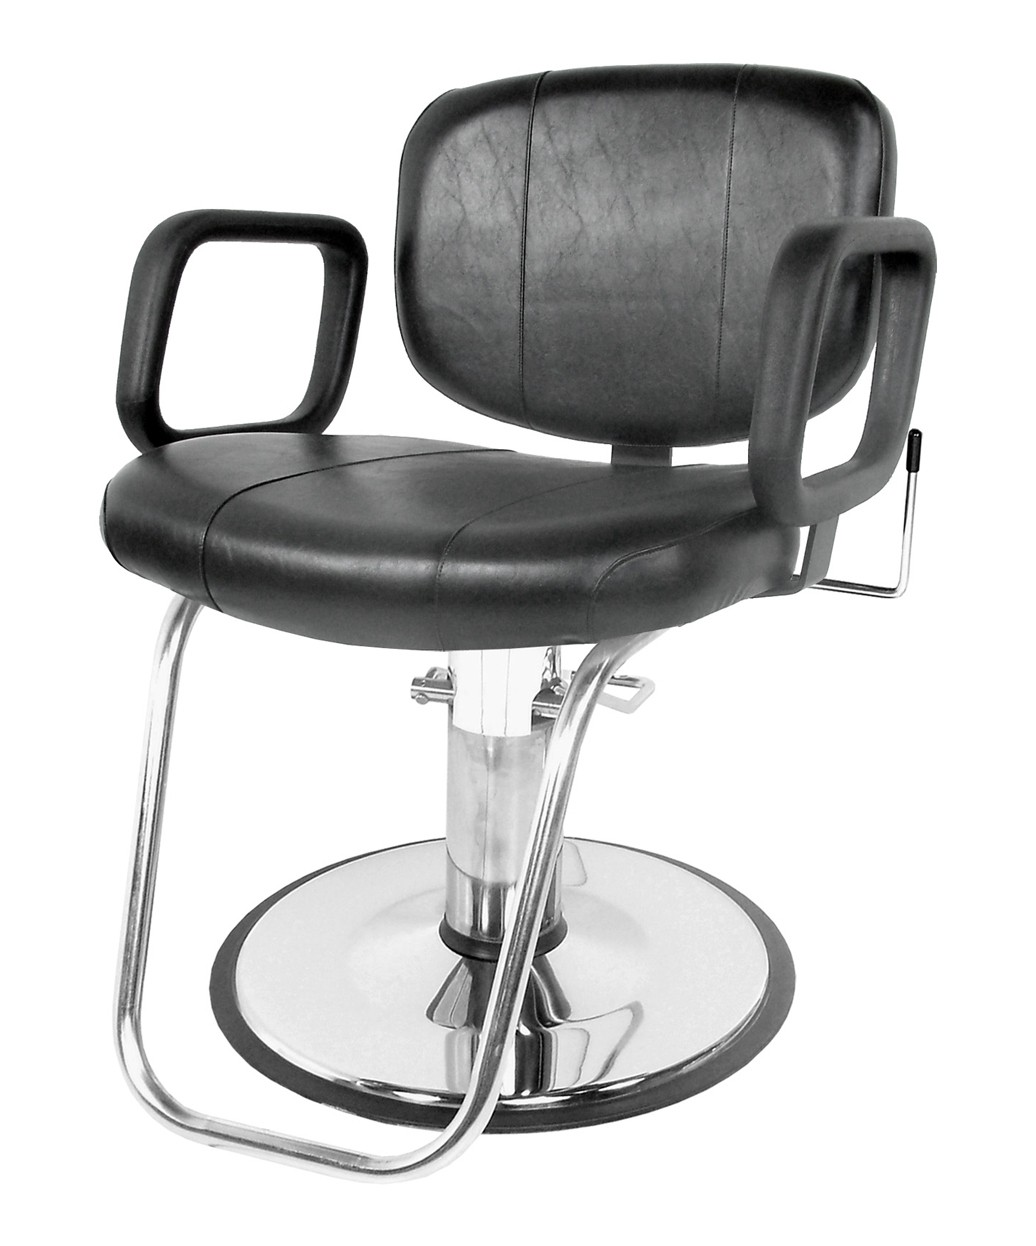 3710 Cody All Purpose Chair with Standard Base